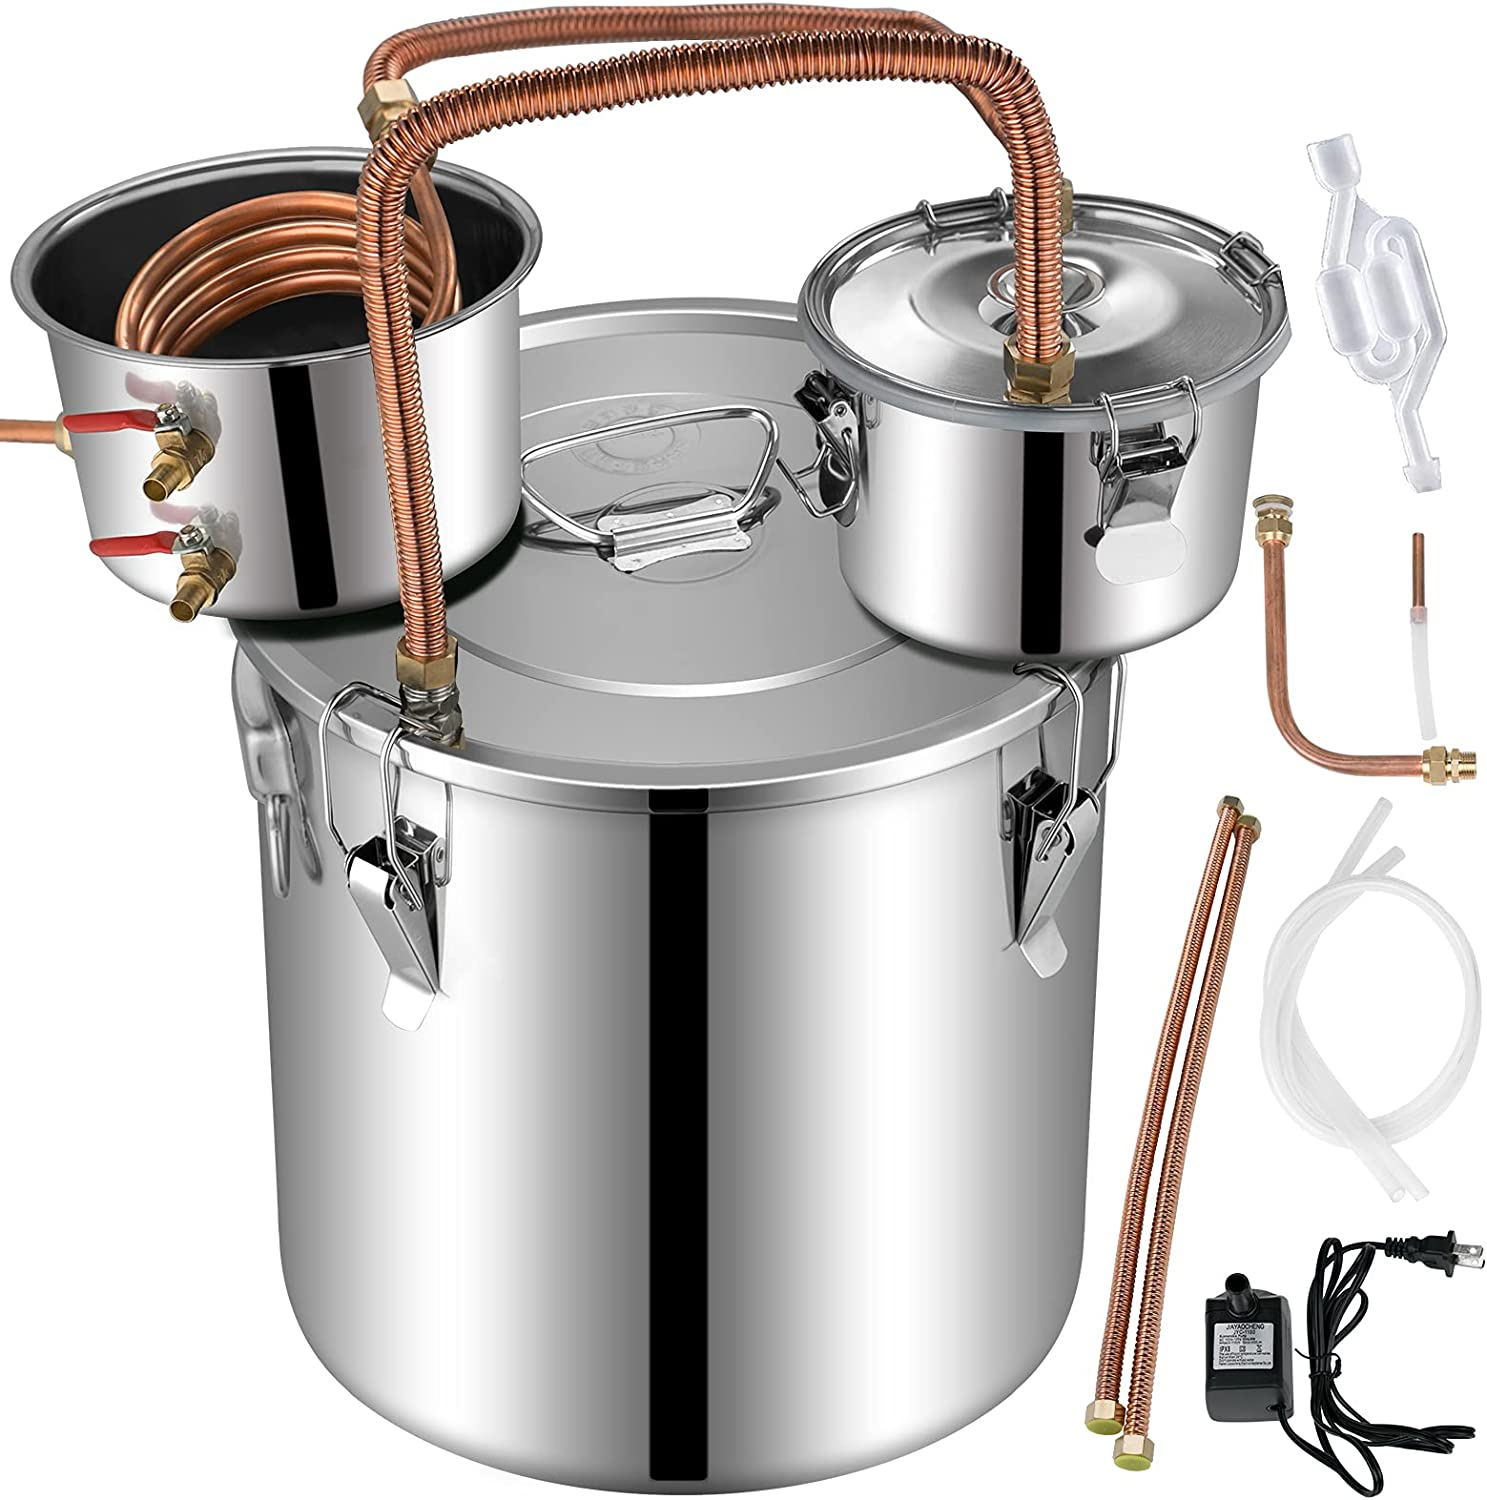 5 Gallon Moonshine Still Stainless Steel Water Alcohol Distiller with Copper Tube 21L Home Brewing Making Kit with Thumper Keg for Whisky Fruit Wine Brandy Built-in Thermometer (5 Gal)